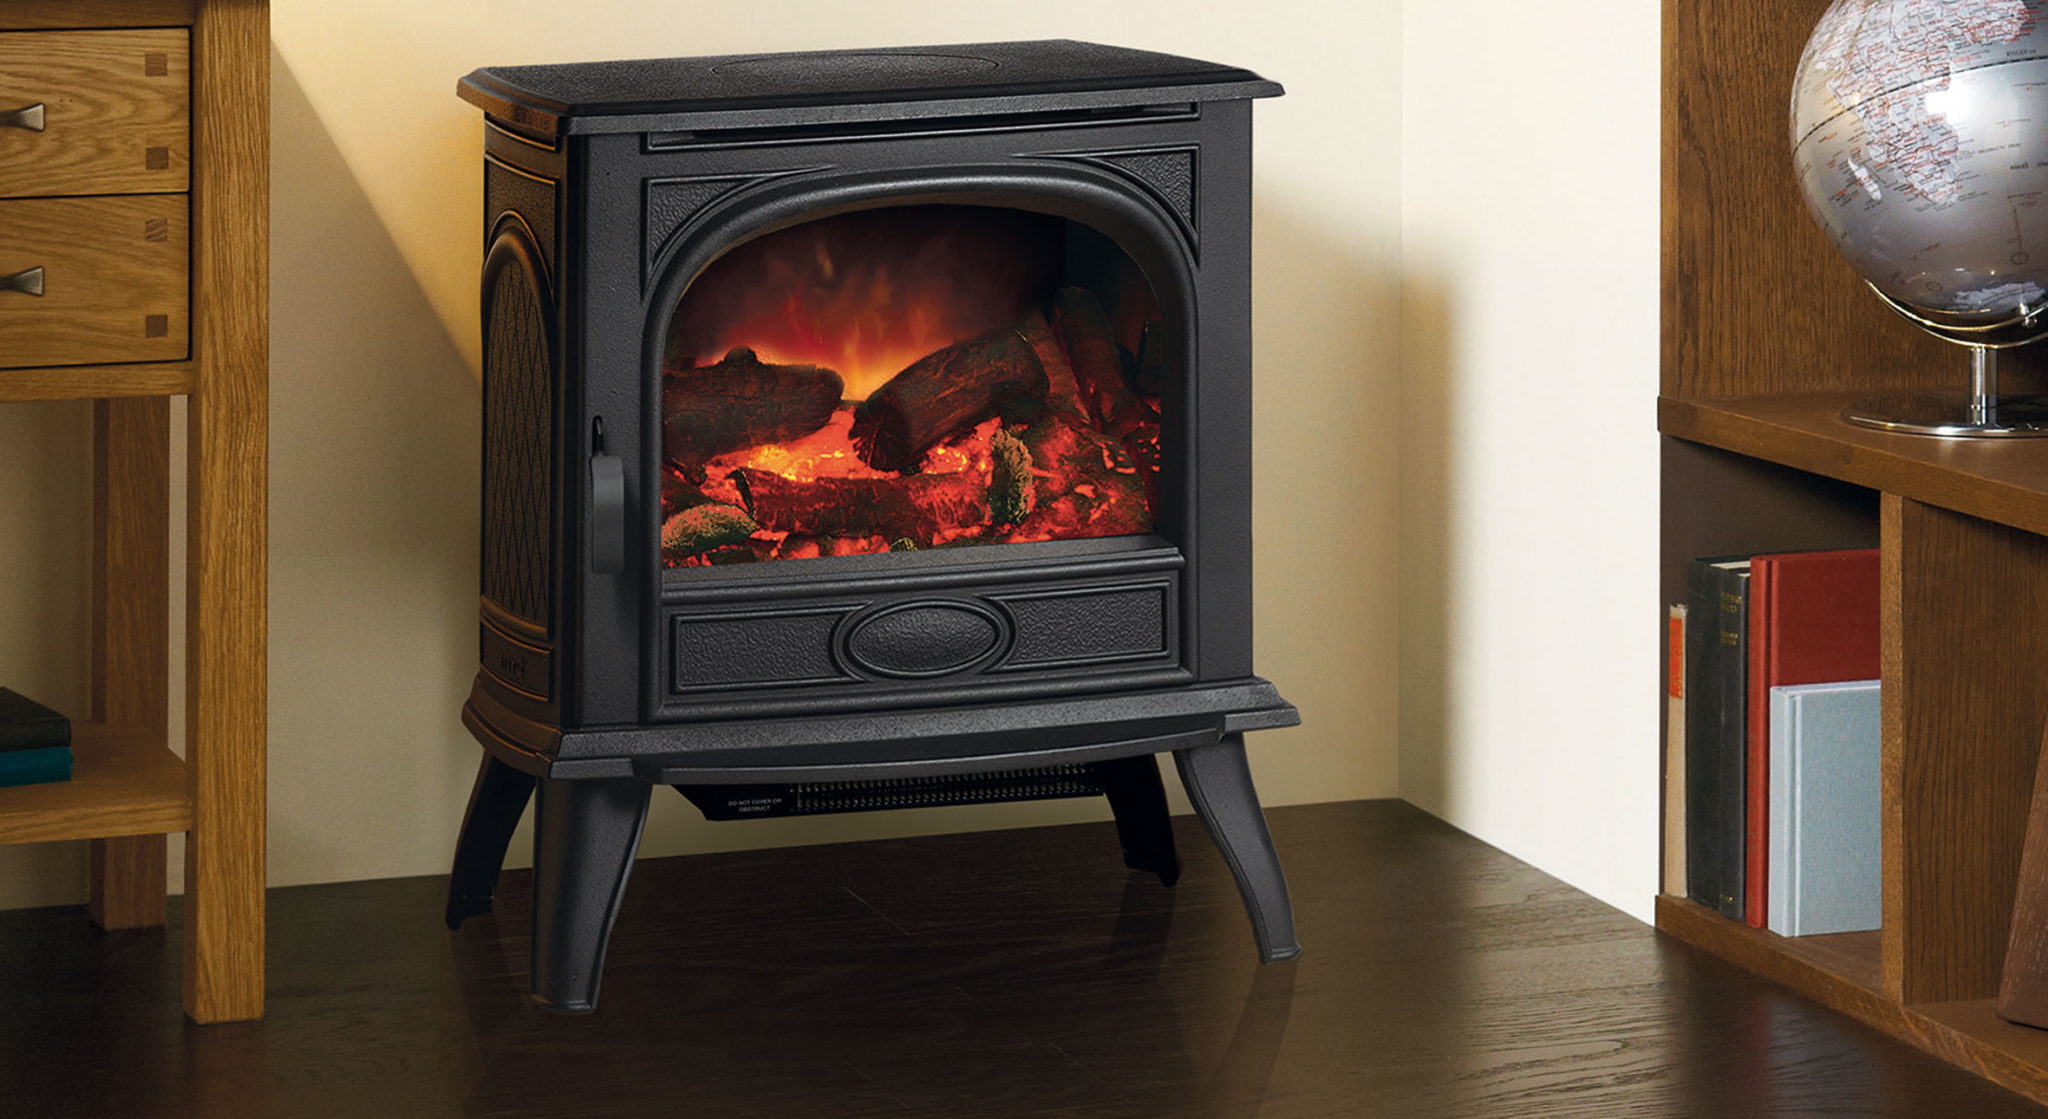 Attractive, Adaptable and Advanced: Dovre's Electric Stoves